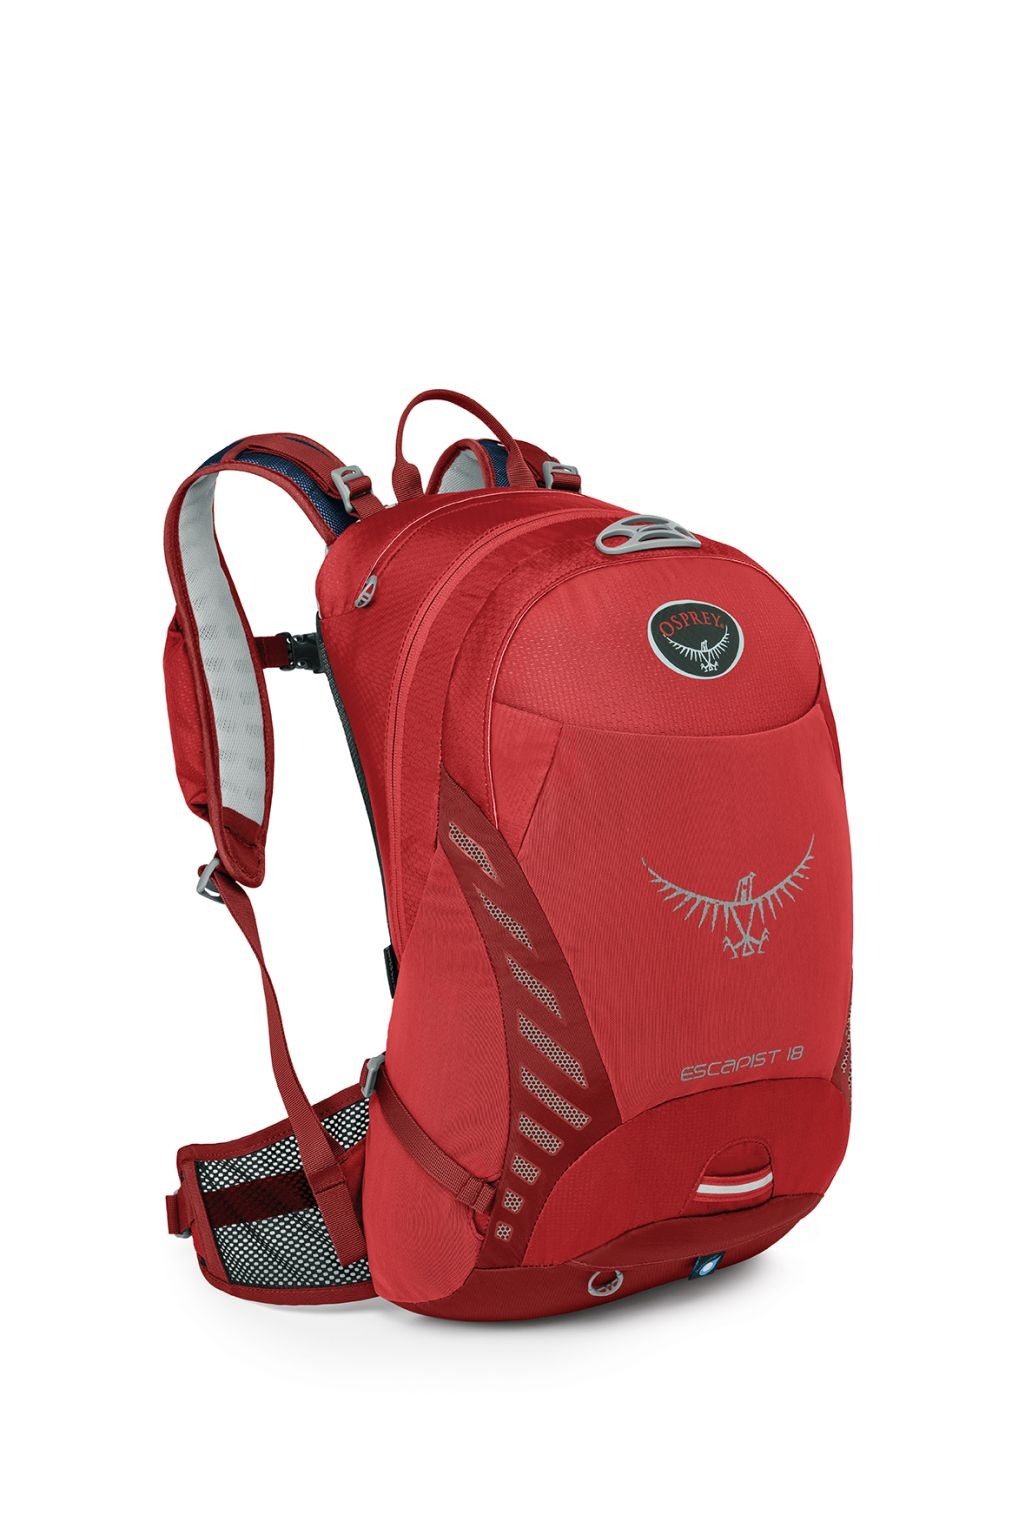 Osprey Escapist 18 Cayenne Red-30